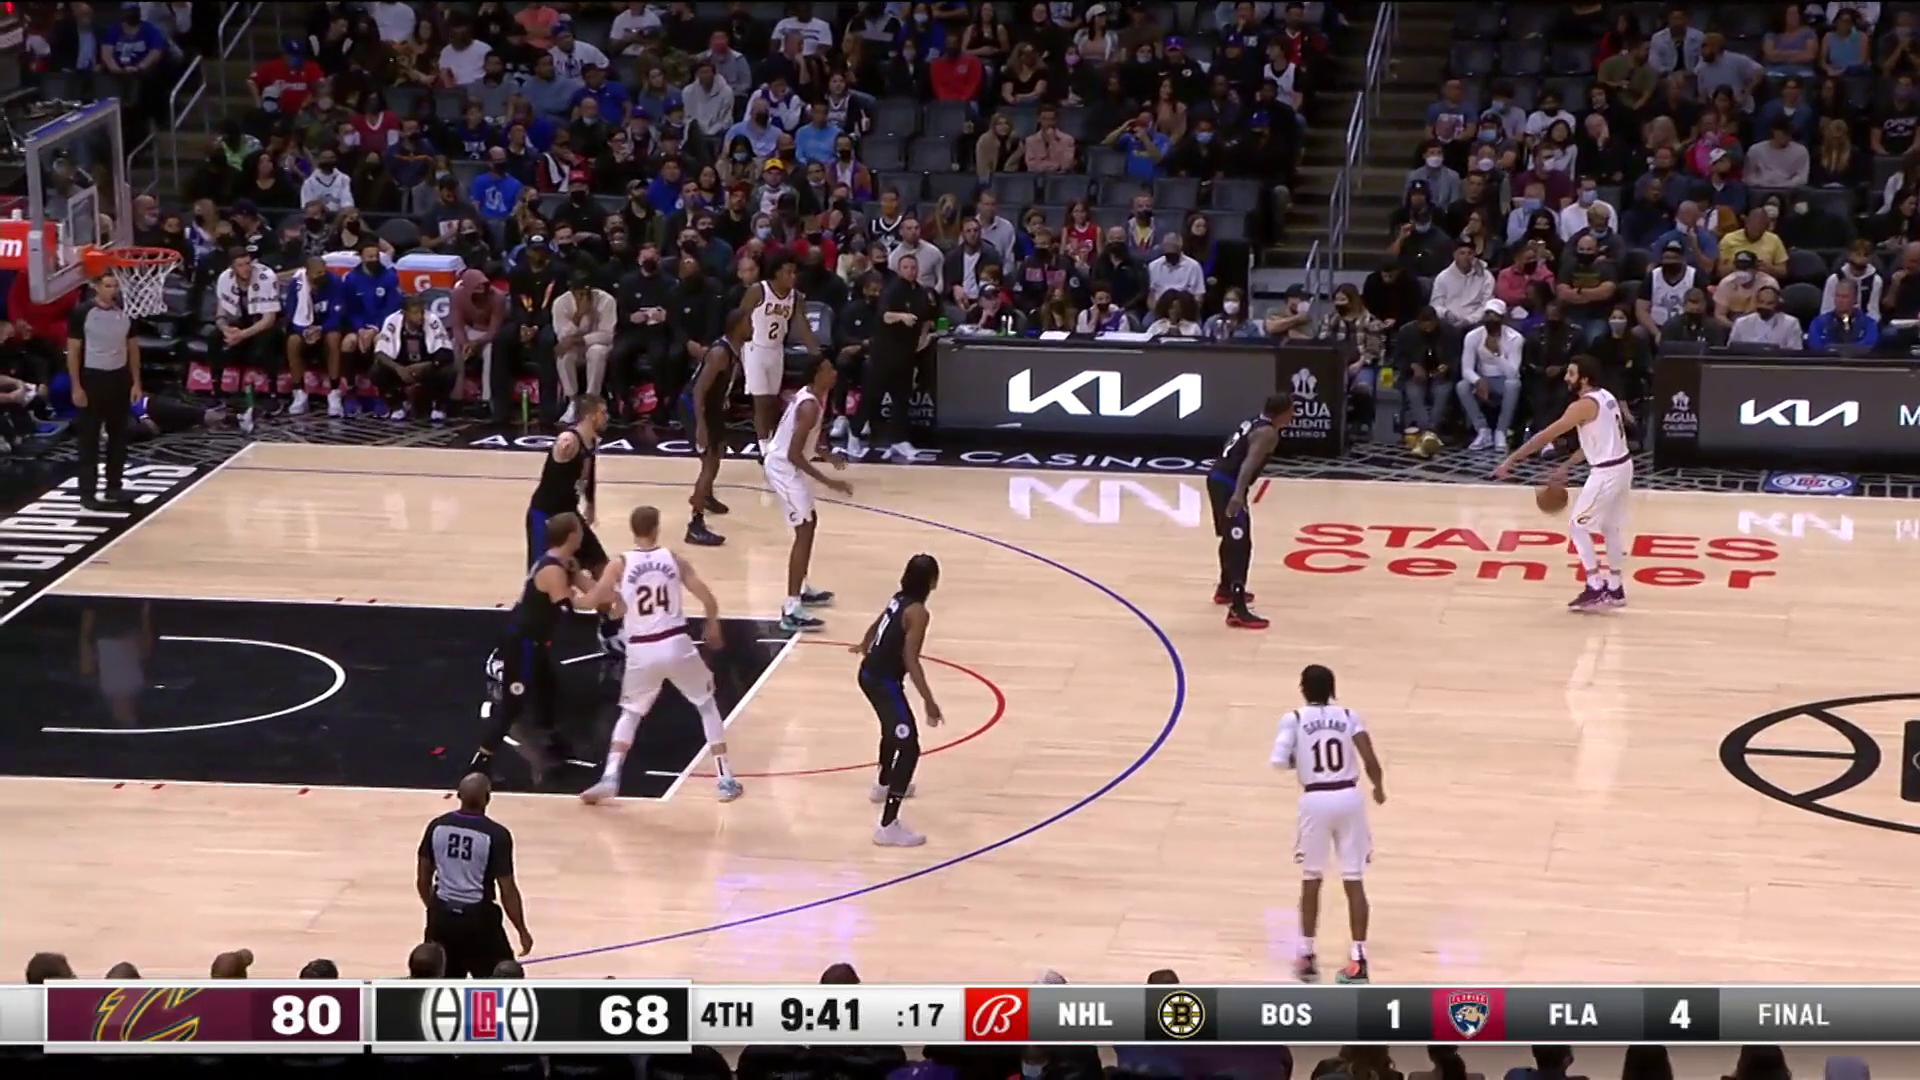 Rubio's No-Look Assist to Sexton